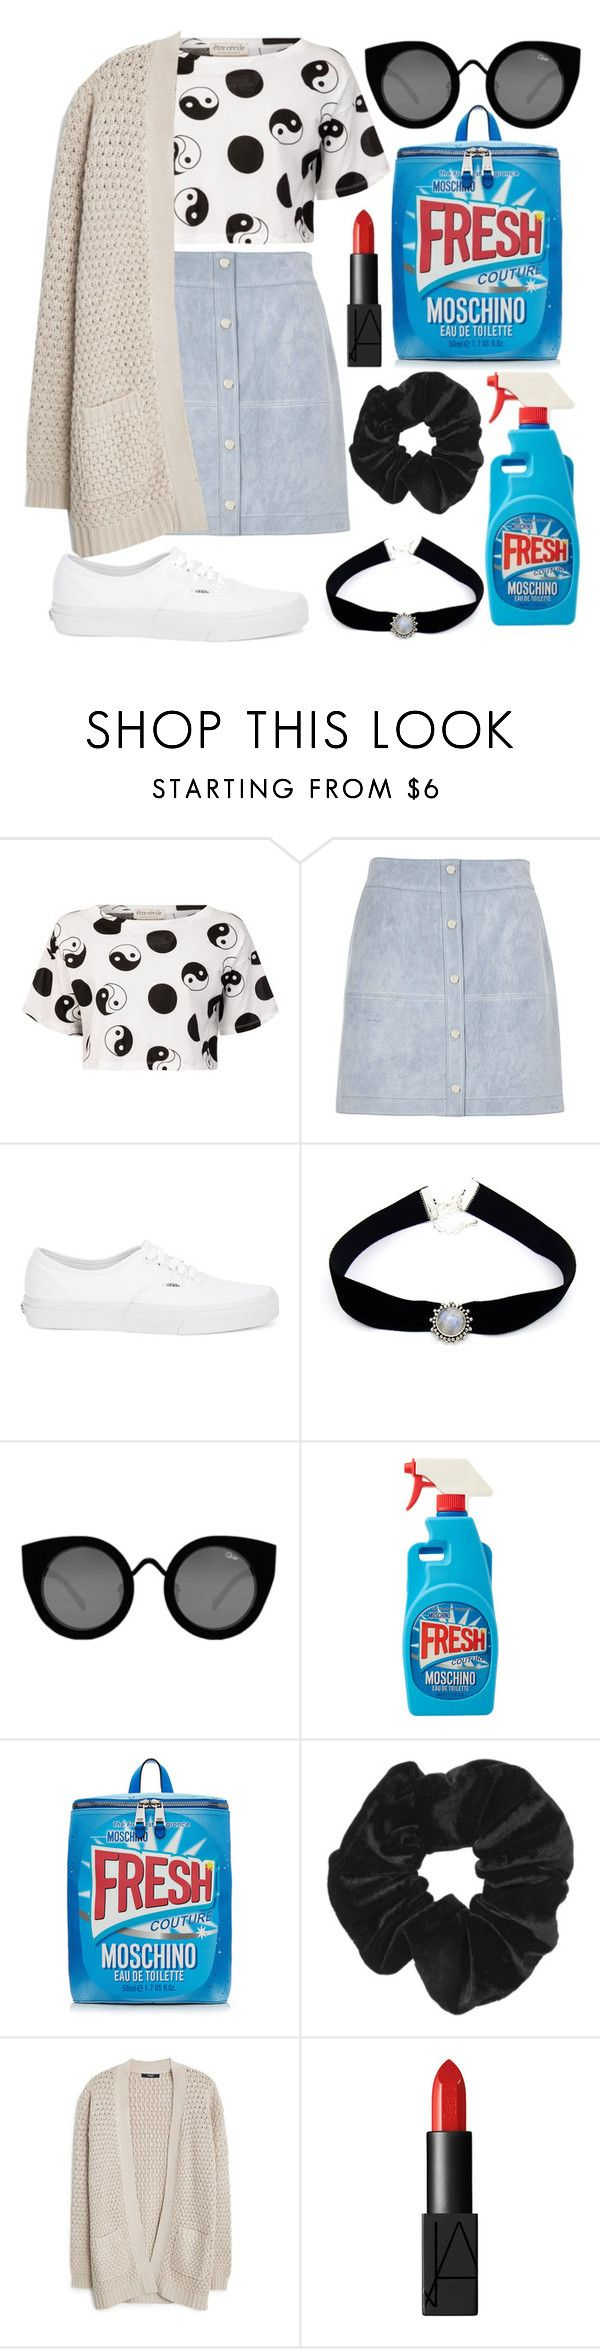 """""""Moschino Couture"""" by cat12103 ❤ liked on Polyvore featuring Être Cécile, River Island, Vans, Sirius, Quay, Moschino, Topshop, MANGO, NARS Cosmetics and women's clothing"""